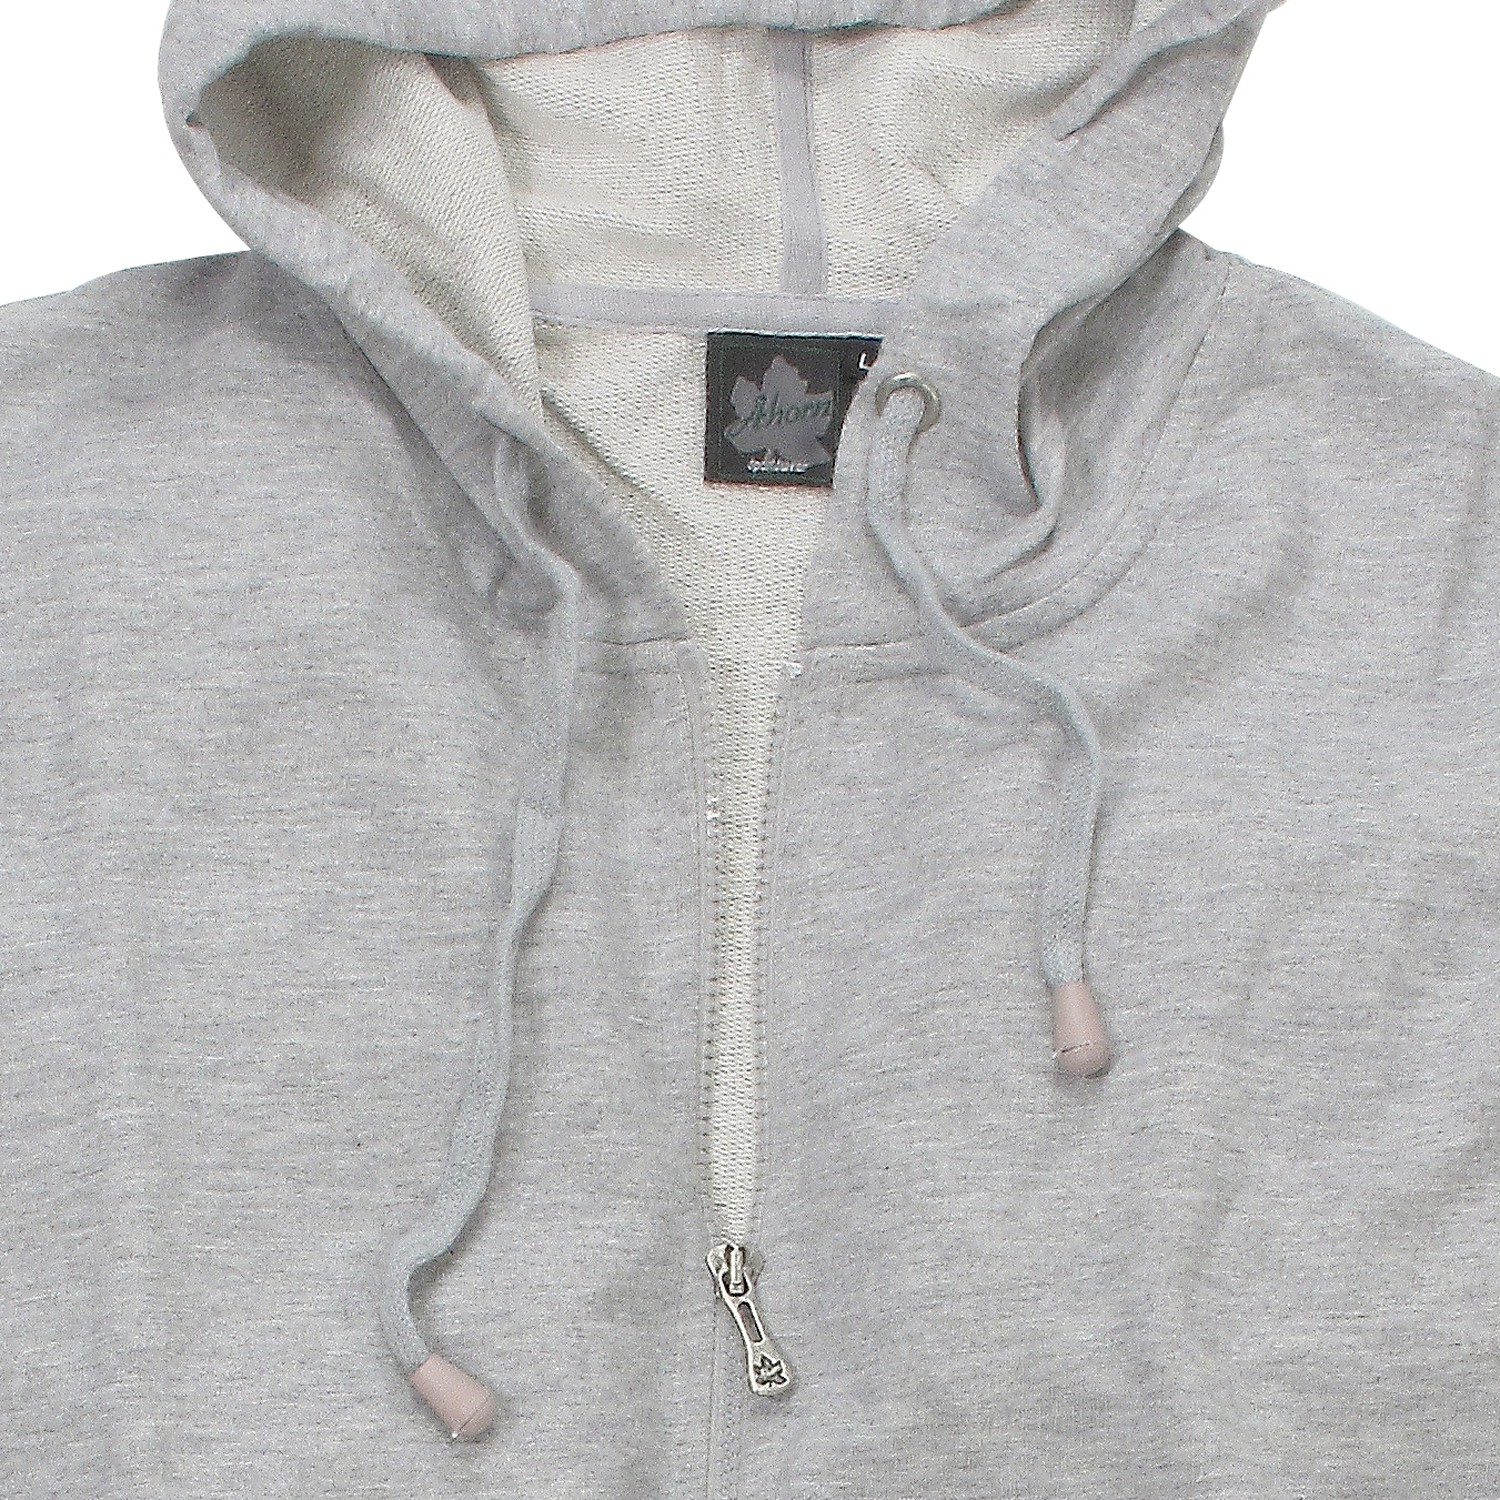 Detail Image to Hooded sweat jacket in grey mottled by Ahorn Sportswear up to oversize 8XL